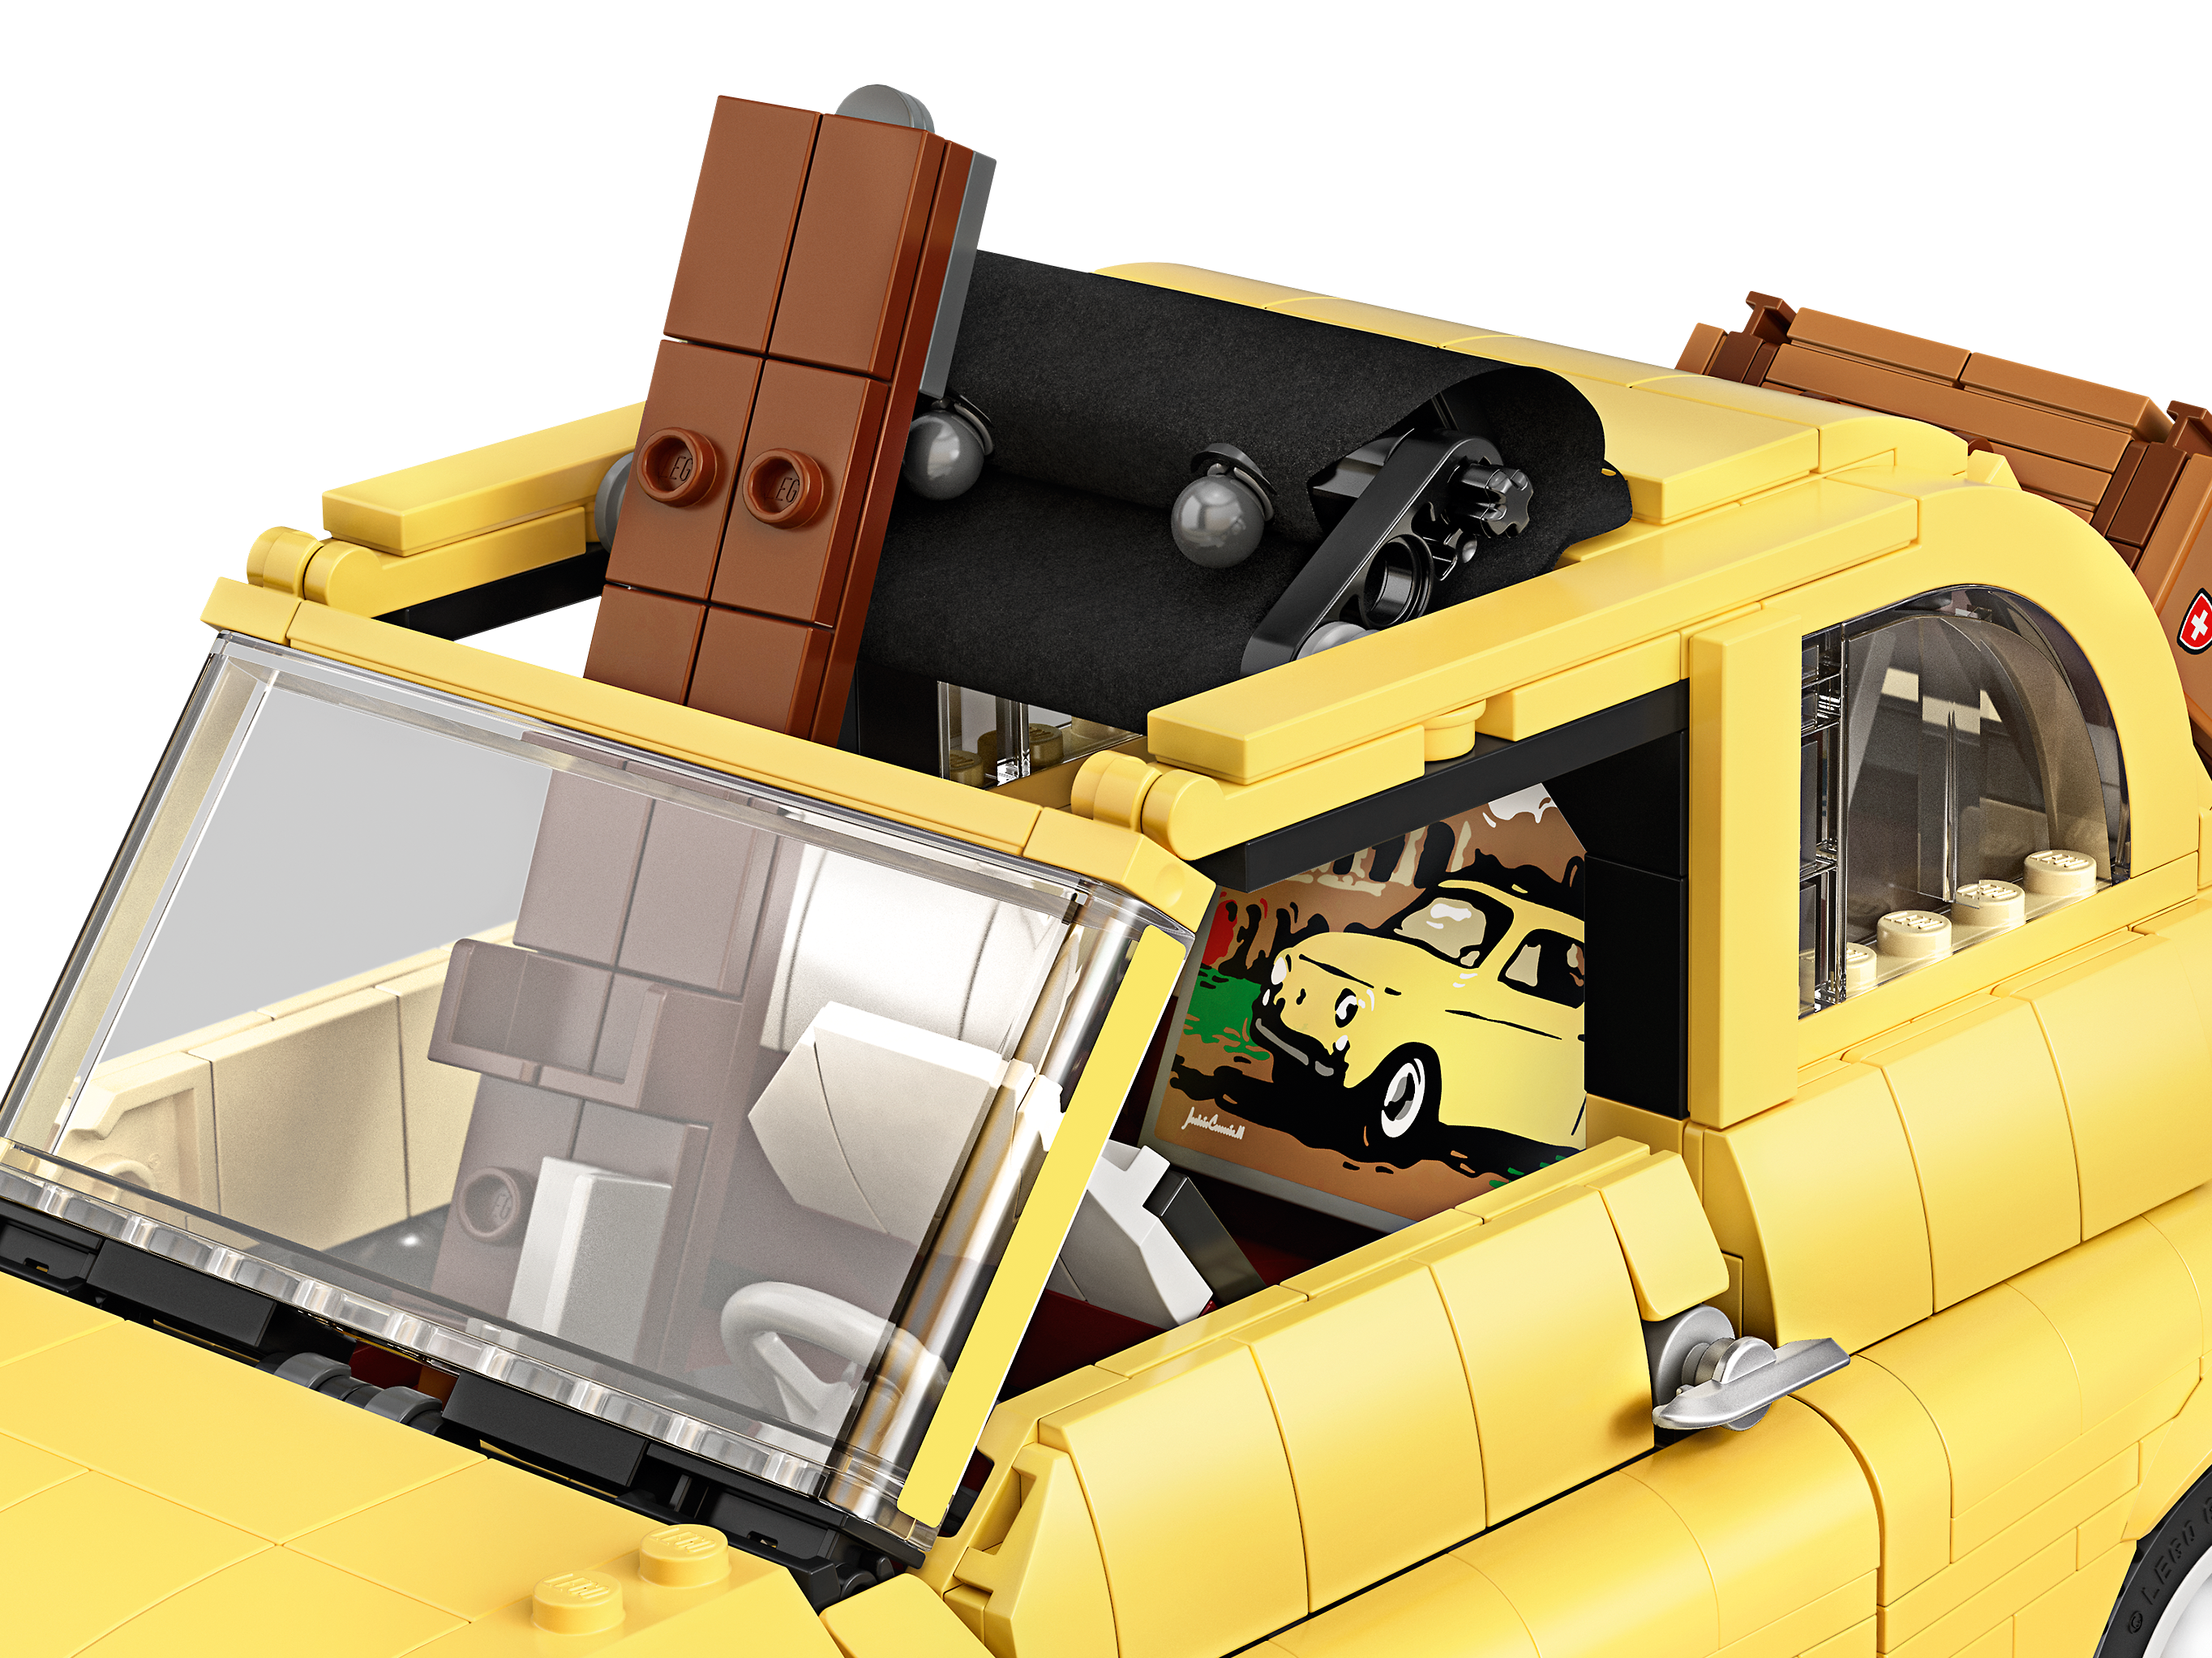 Fiat 500 10271 Creator Expert Buy Online At The Official Lego Shop Us In 2020 Fiat 500 Fiat Lego Cars